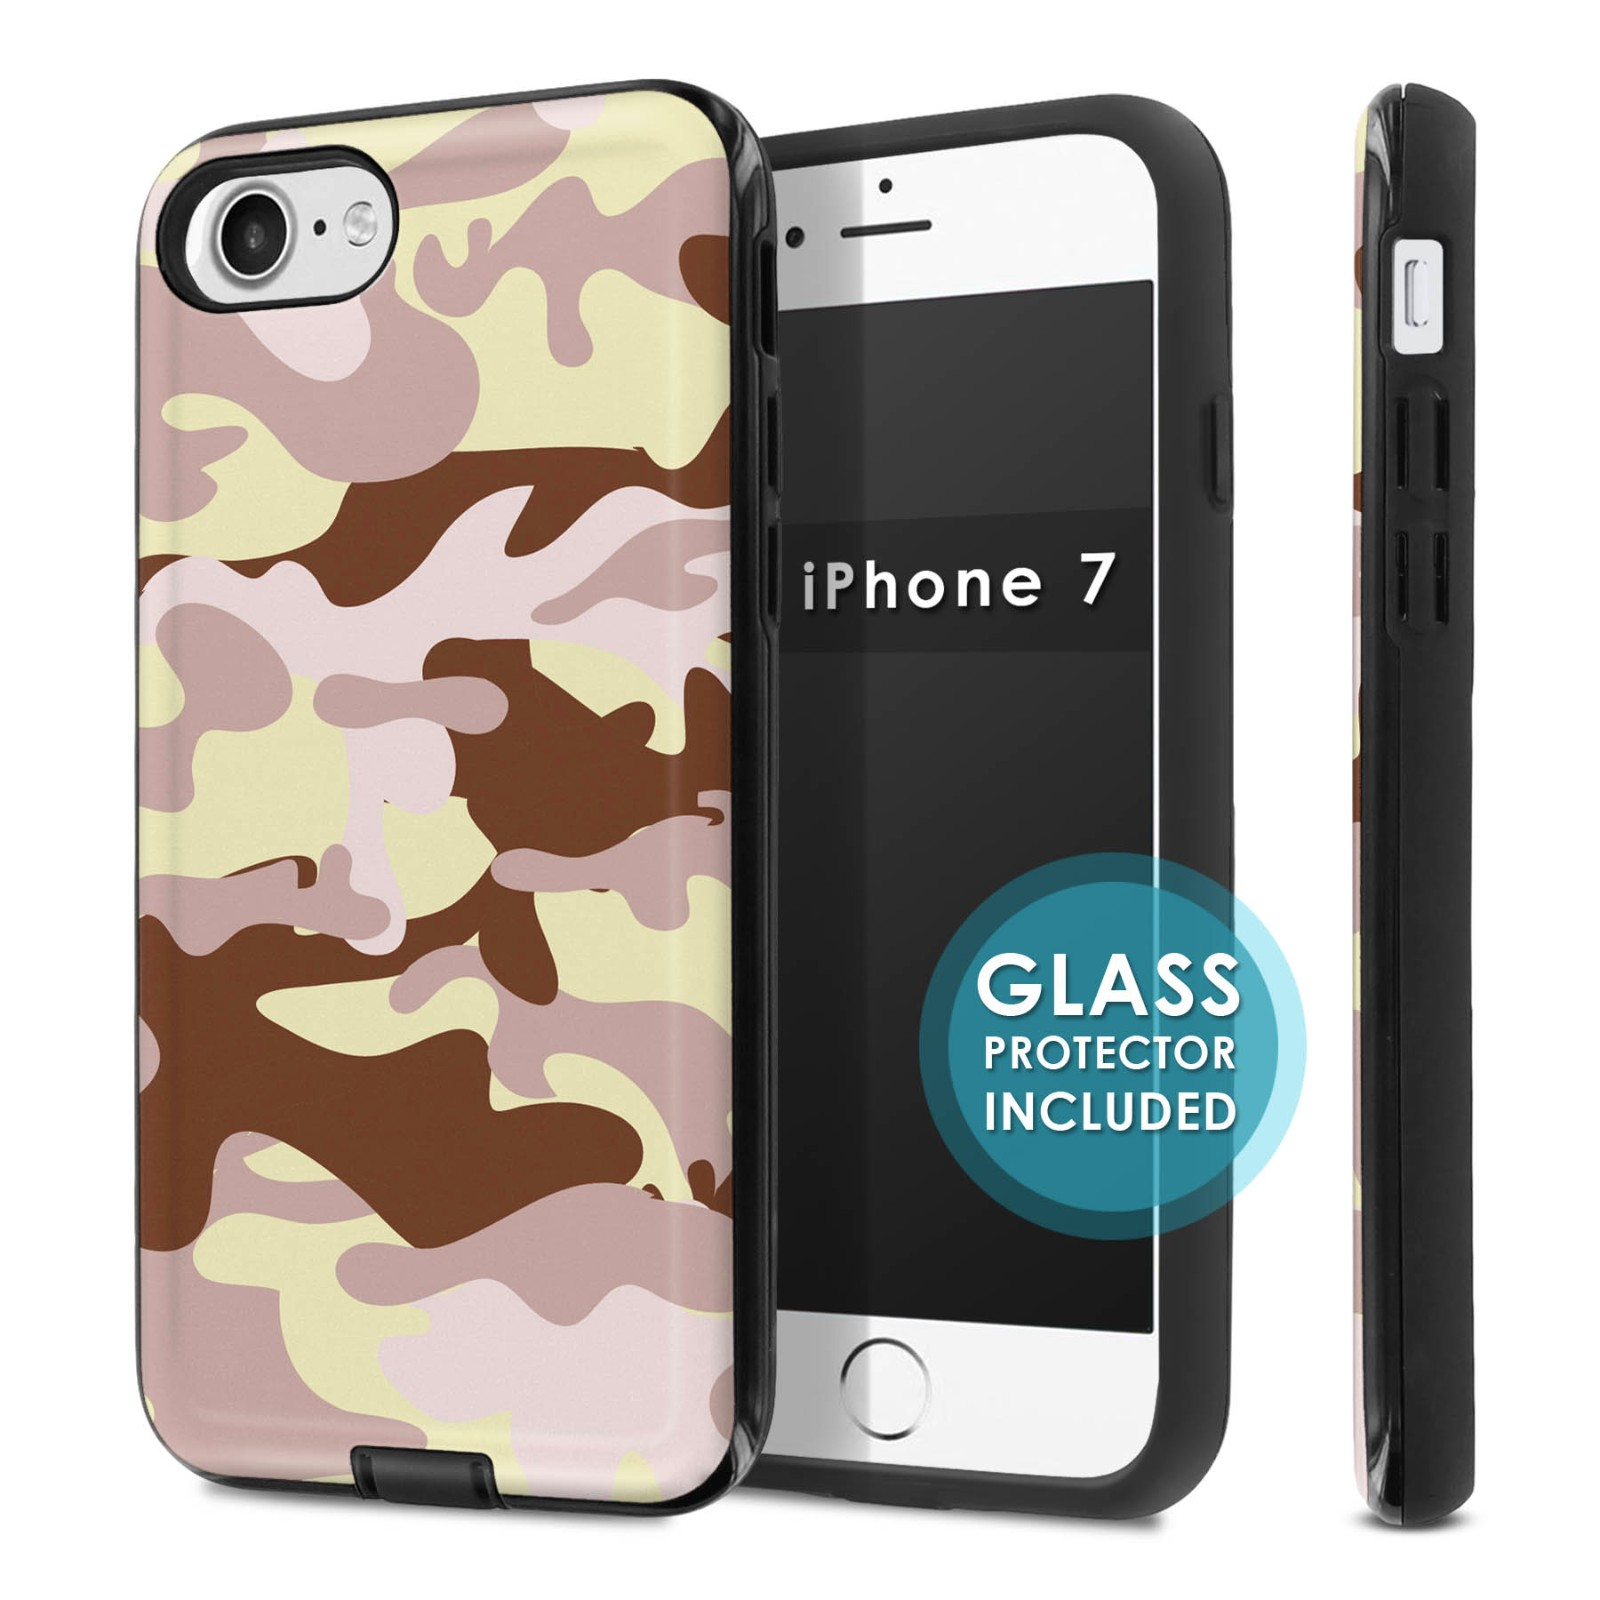 Iphone 7 dual armor shockproof case tempered glass for Window protector designs